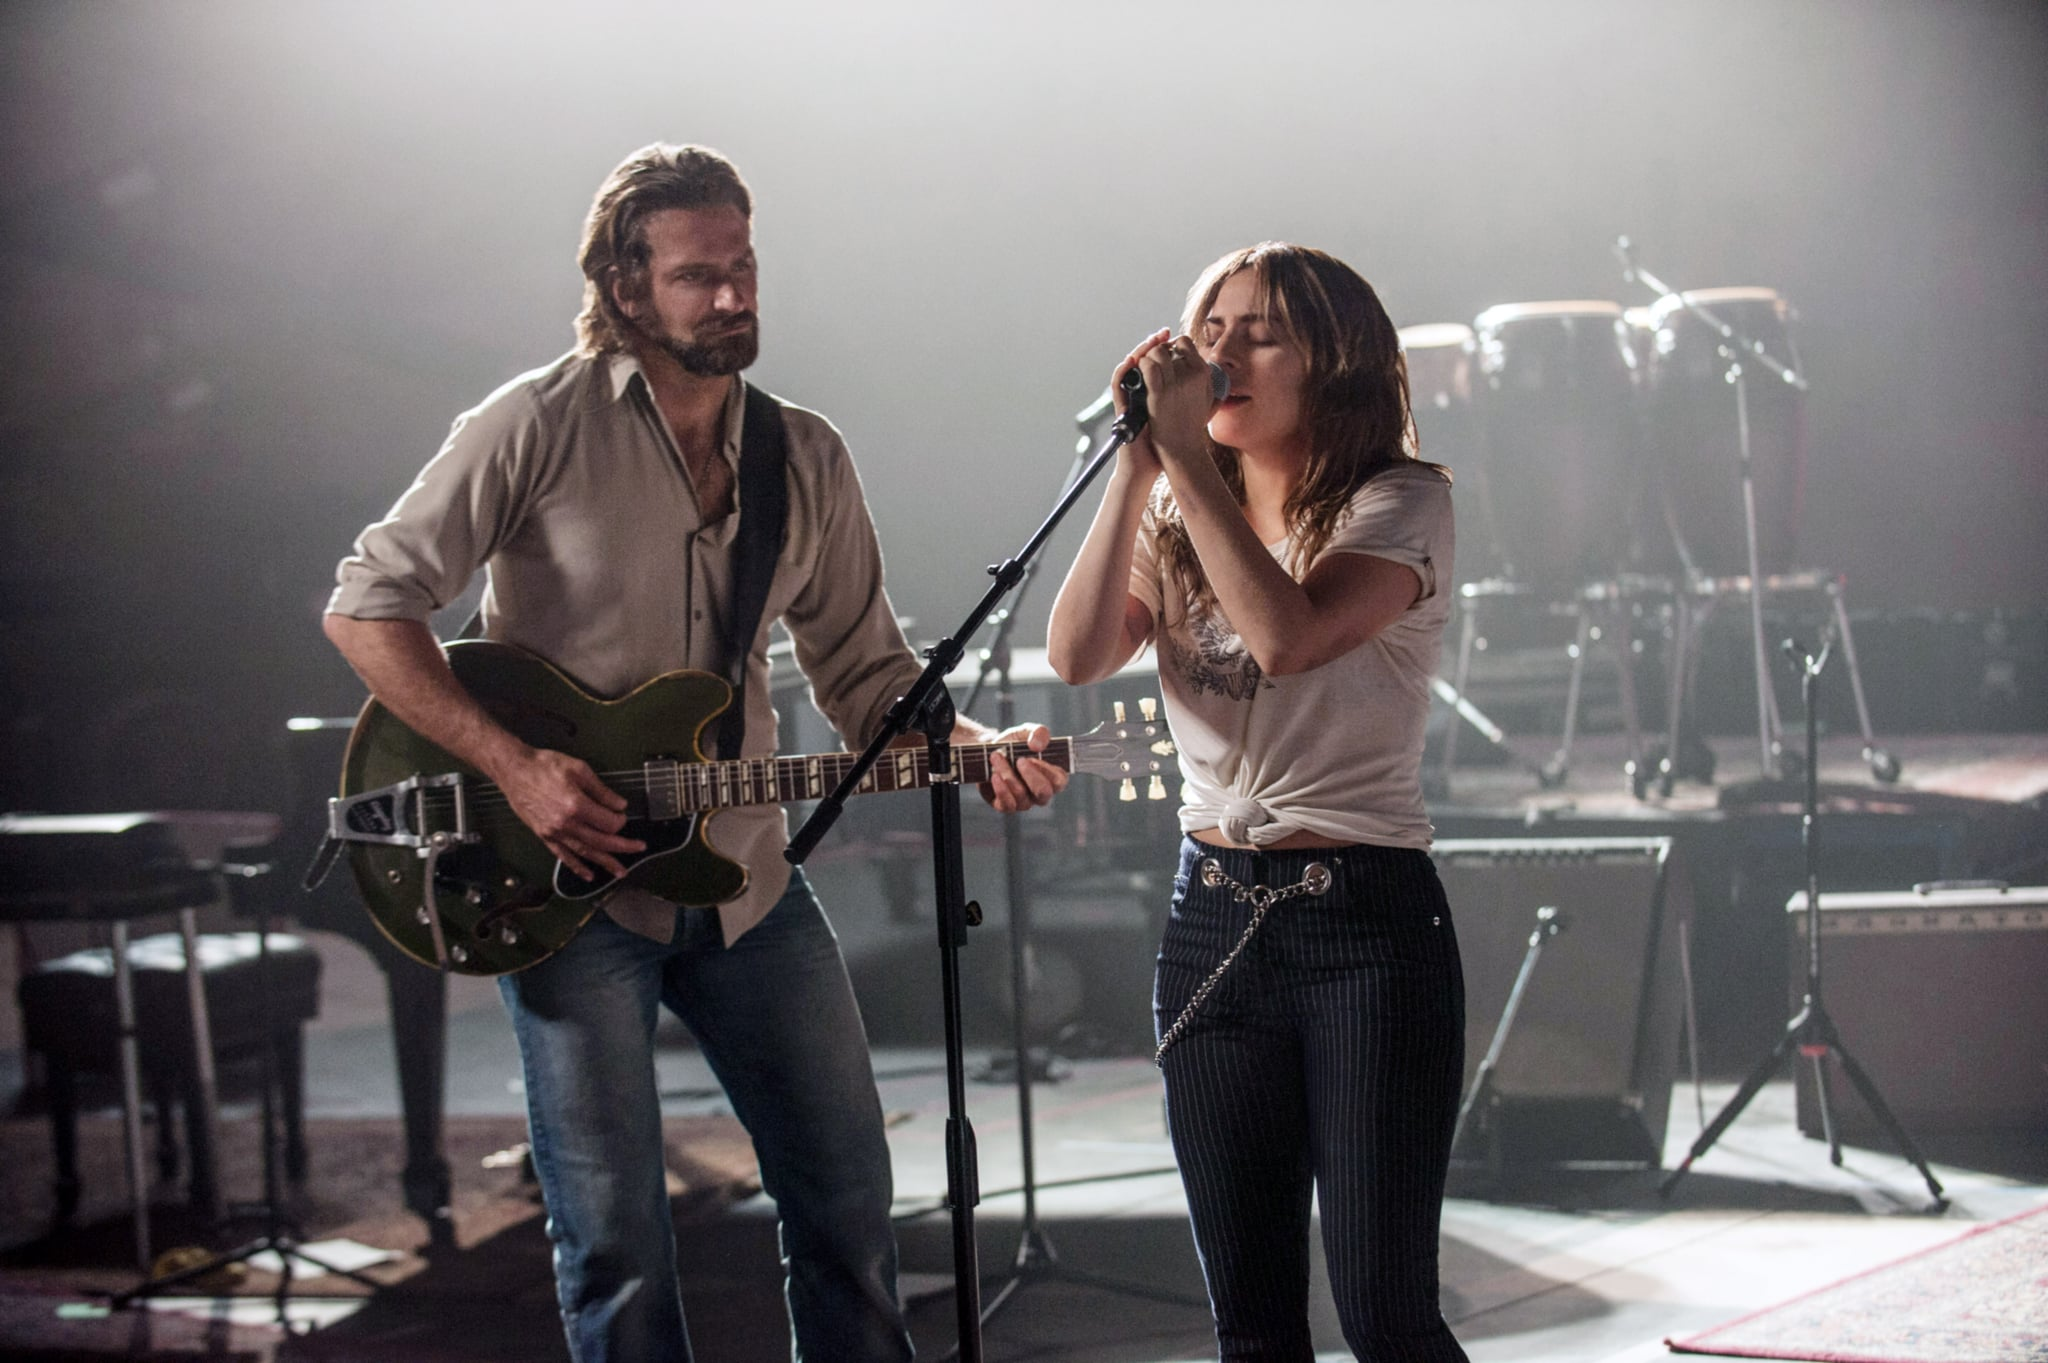 Did bradley cooper really play guitar in a star is born